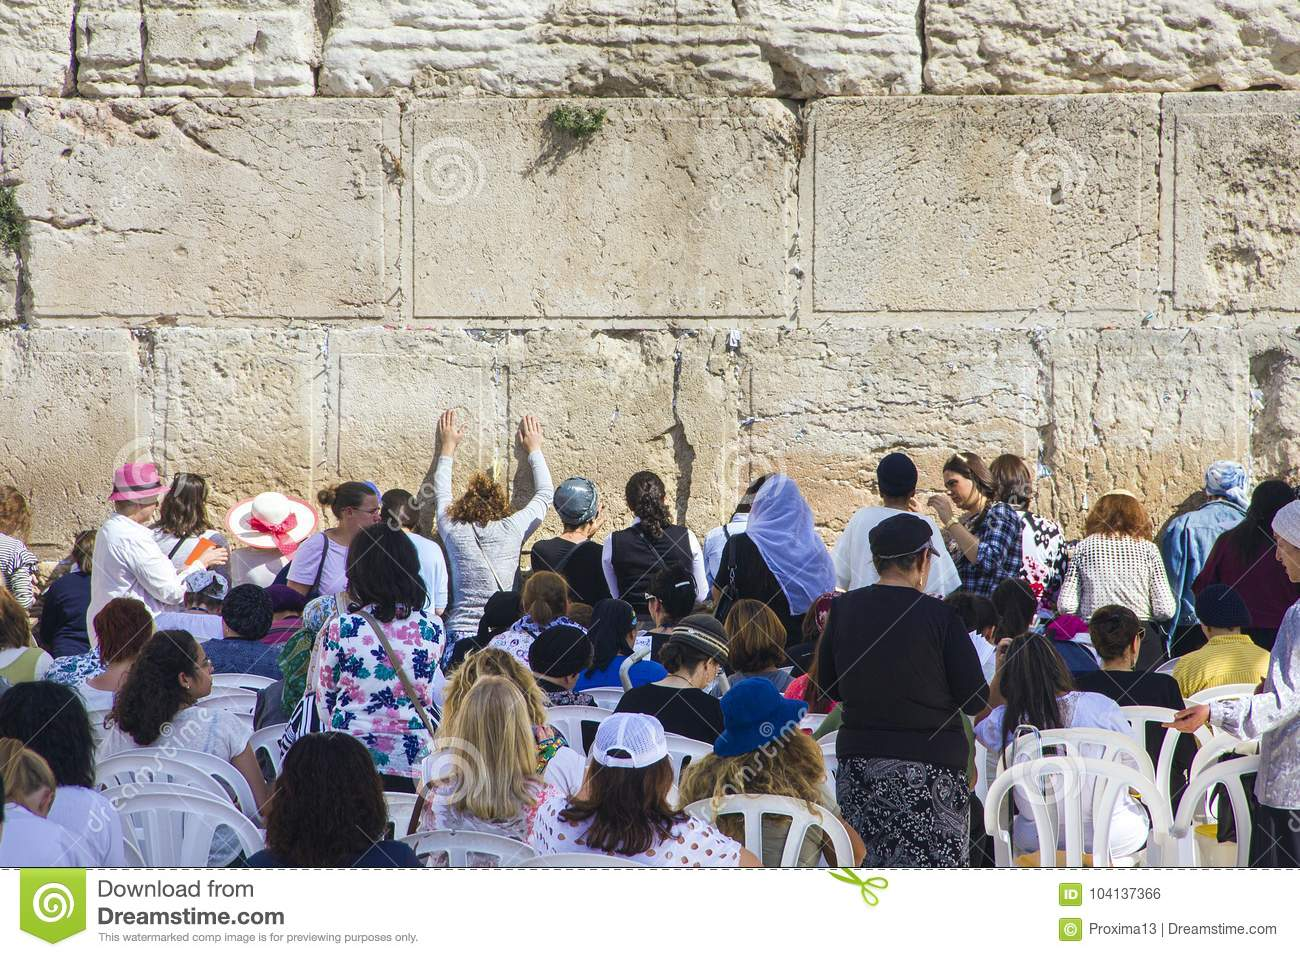 People pray a the Western Wall, Wailing Wall or Kotel the Place of Weeping is an ancient limestone